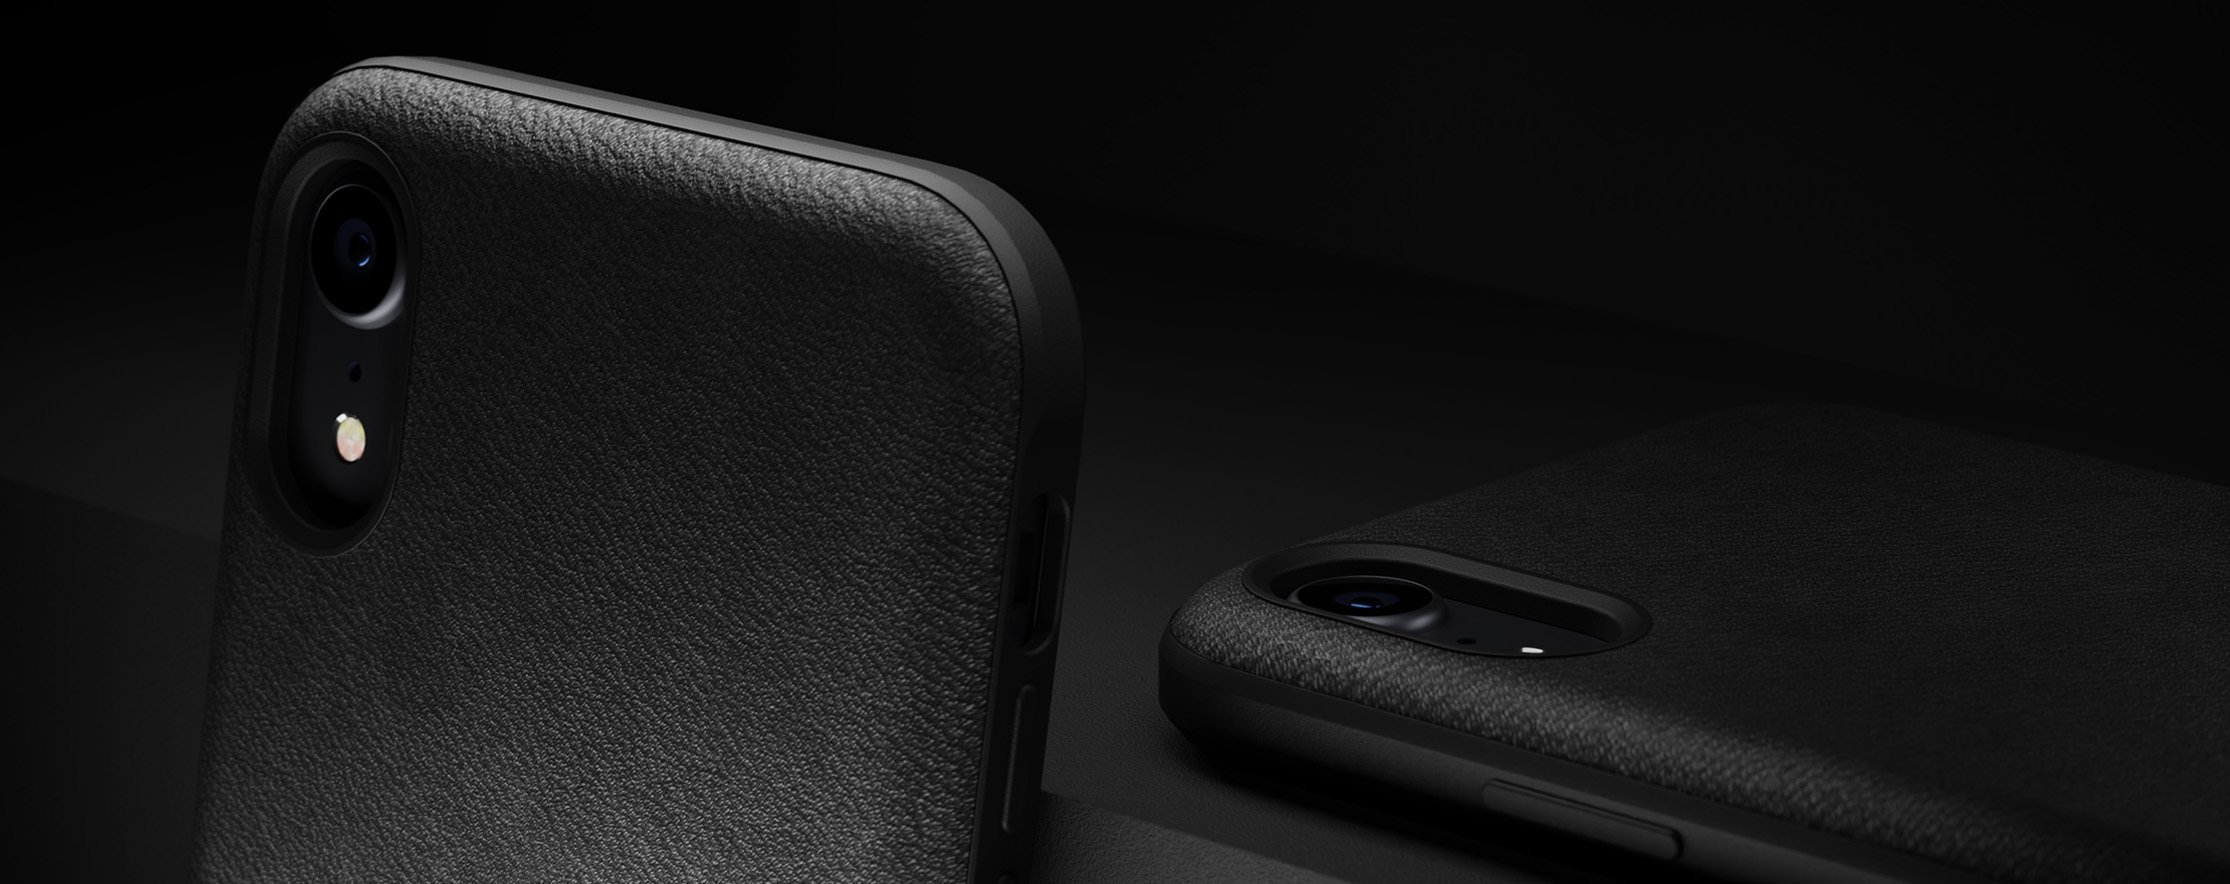 nomad-rugged-case-iphone-xr-black-malaysia-overview-malaysia-9